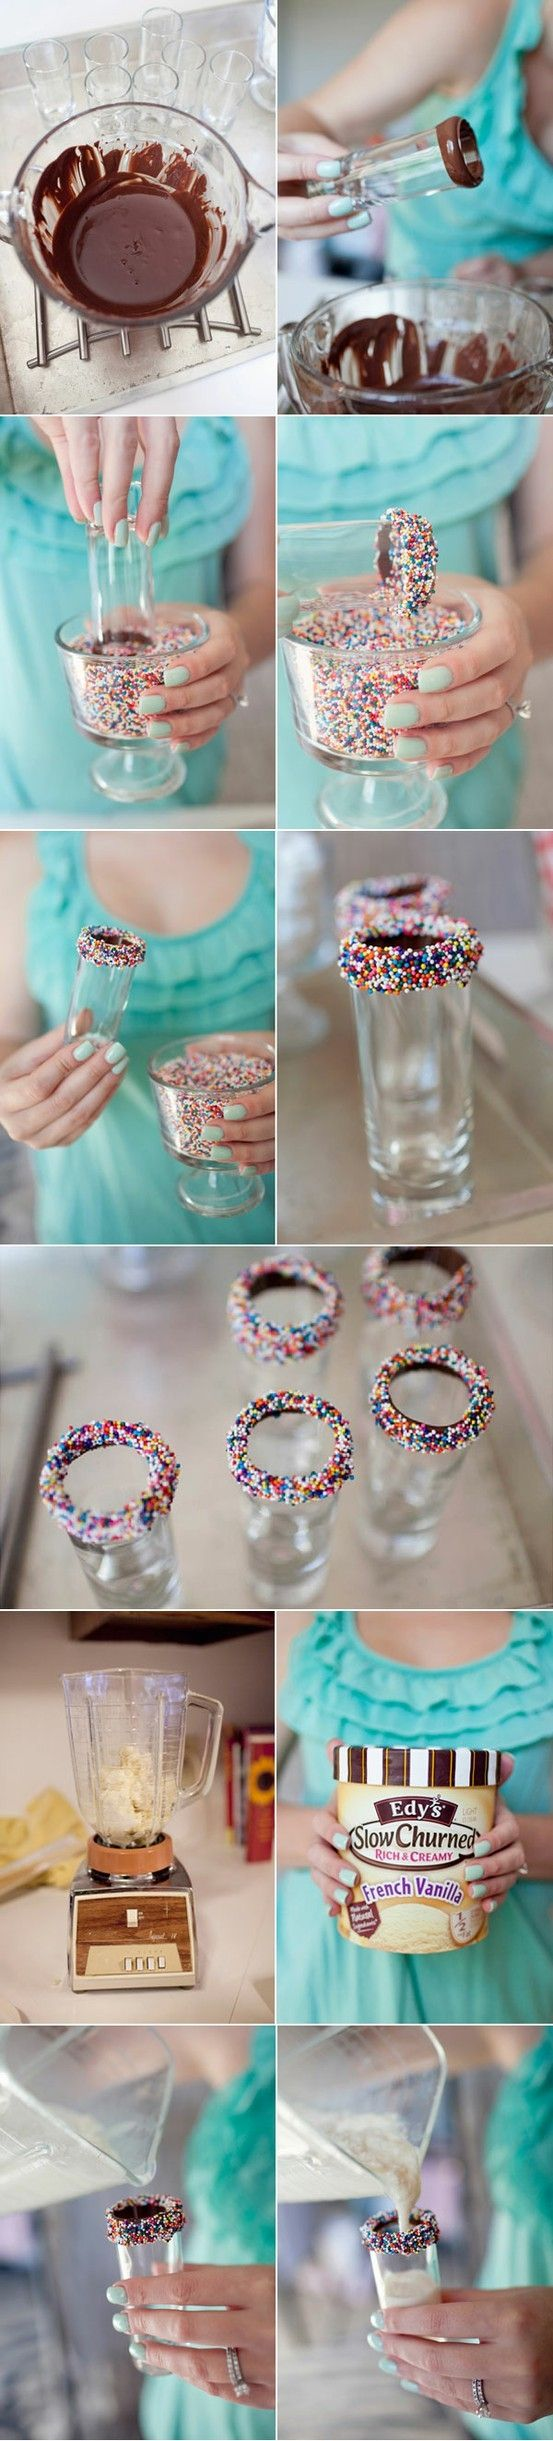 too much??? Mini Milkshake Shooters...super cute for a party